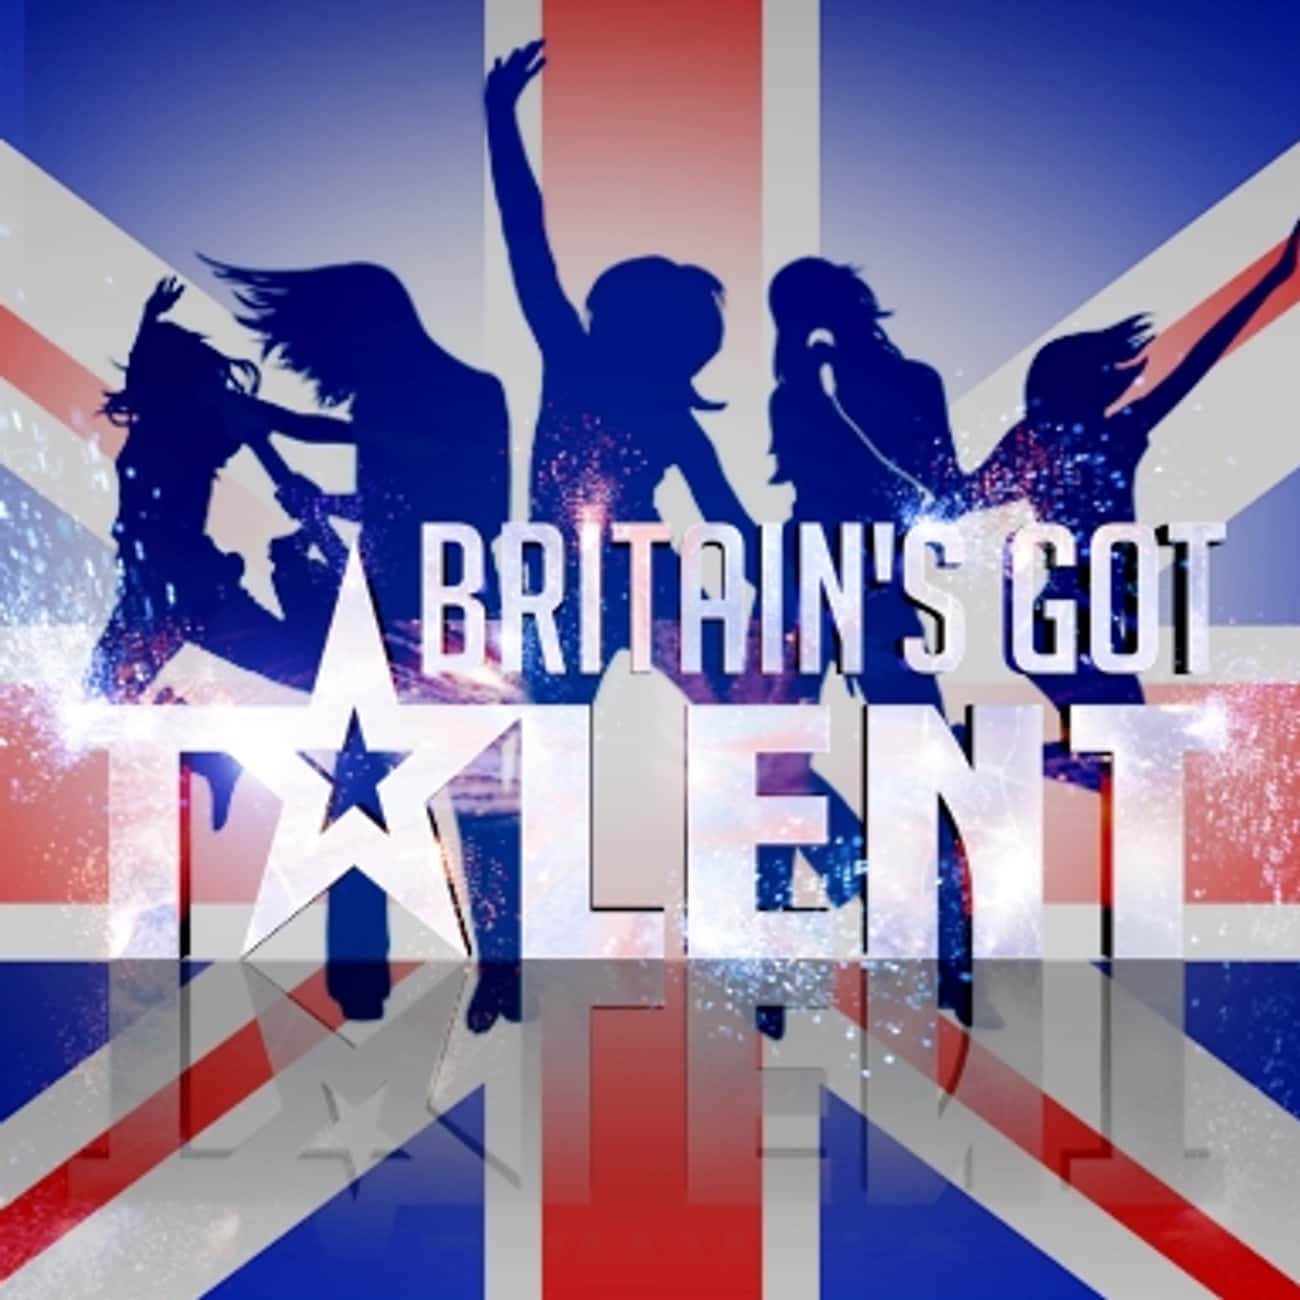 Britain's Got Talent is listed (or ranked) 1 on the list The Best Simon Cowell Shows